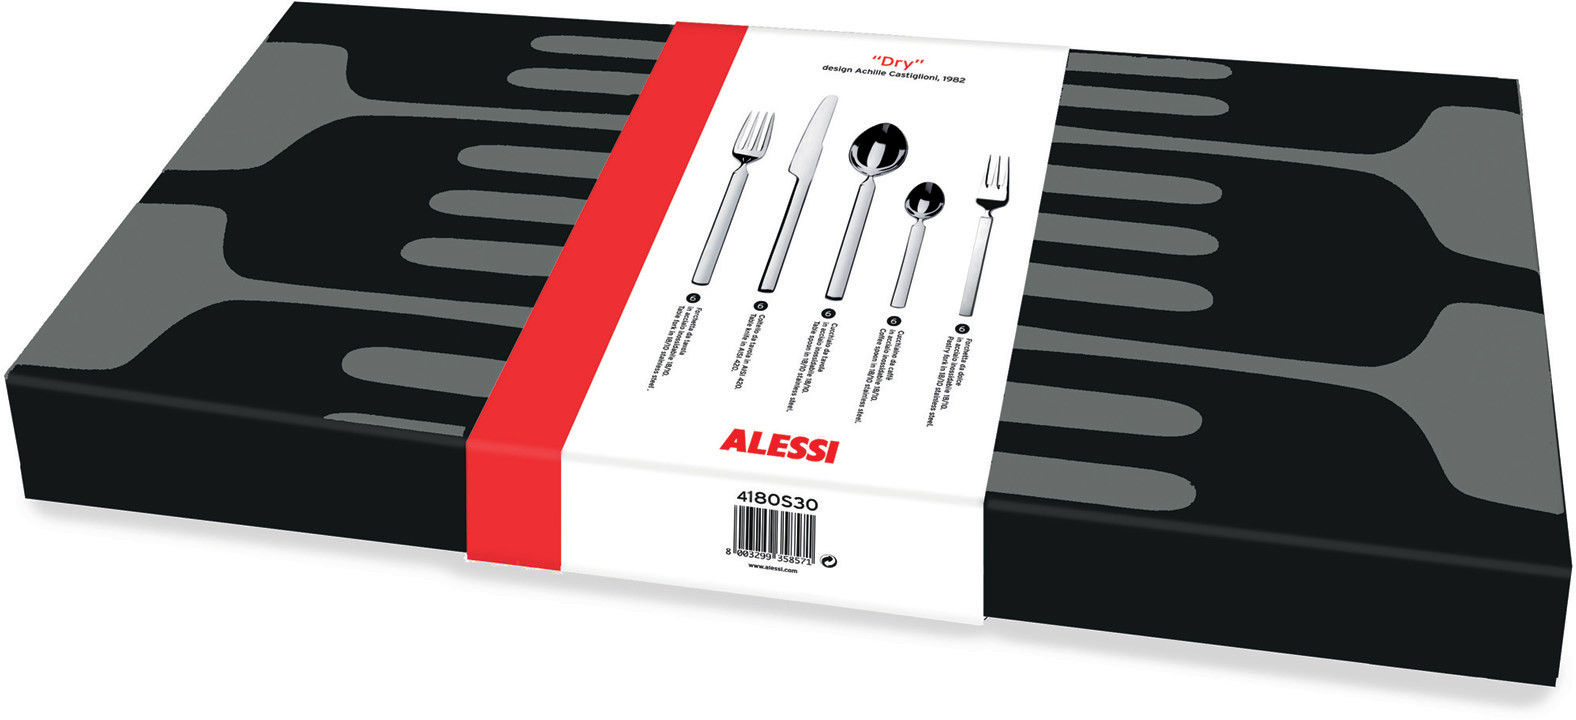 Tableware - Cutlery - Dry Kitchen cupboard by Alessi - Polished steel - Polished stainless steel